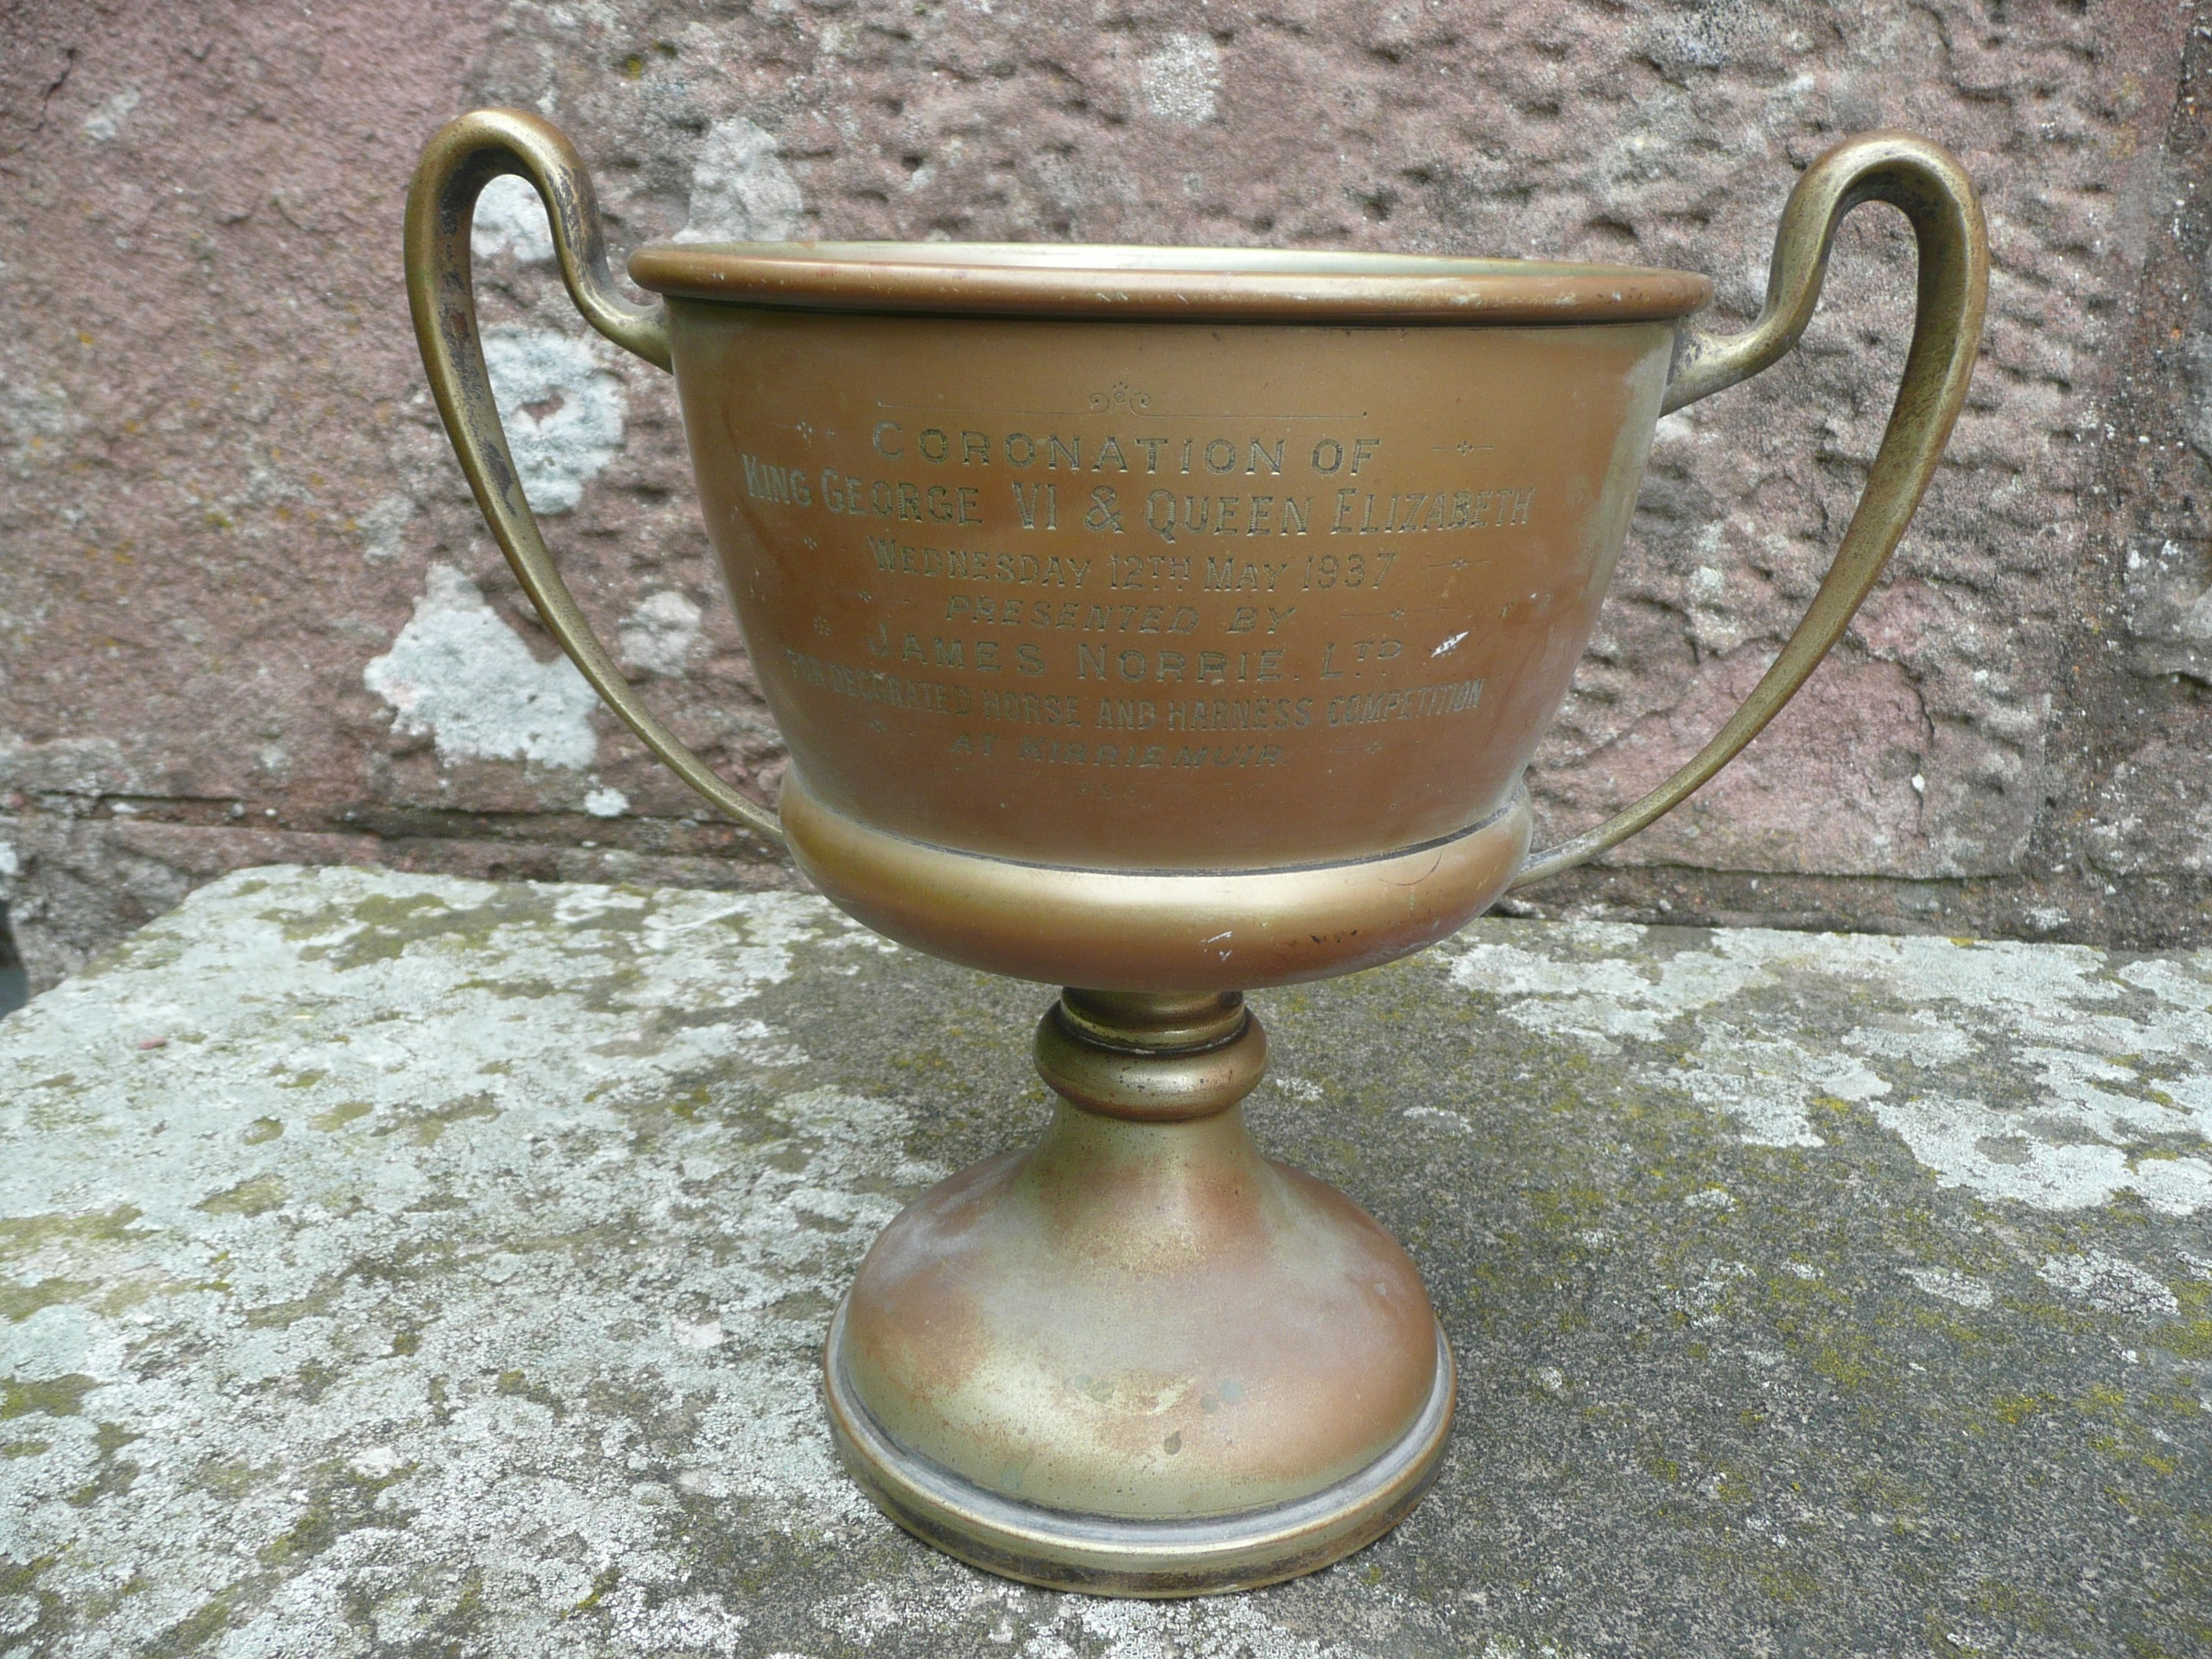 The 80-year-old trophy